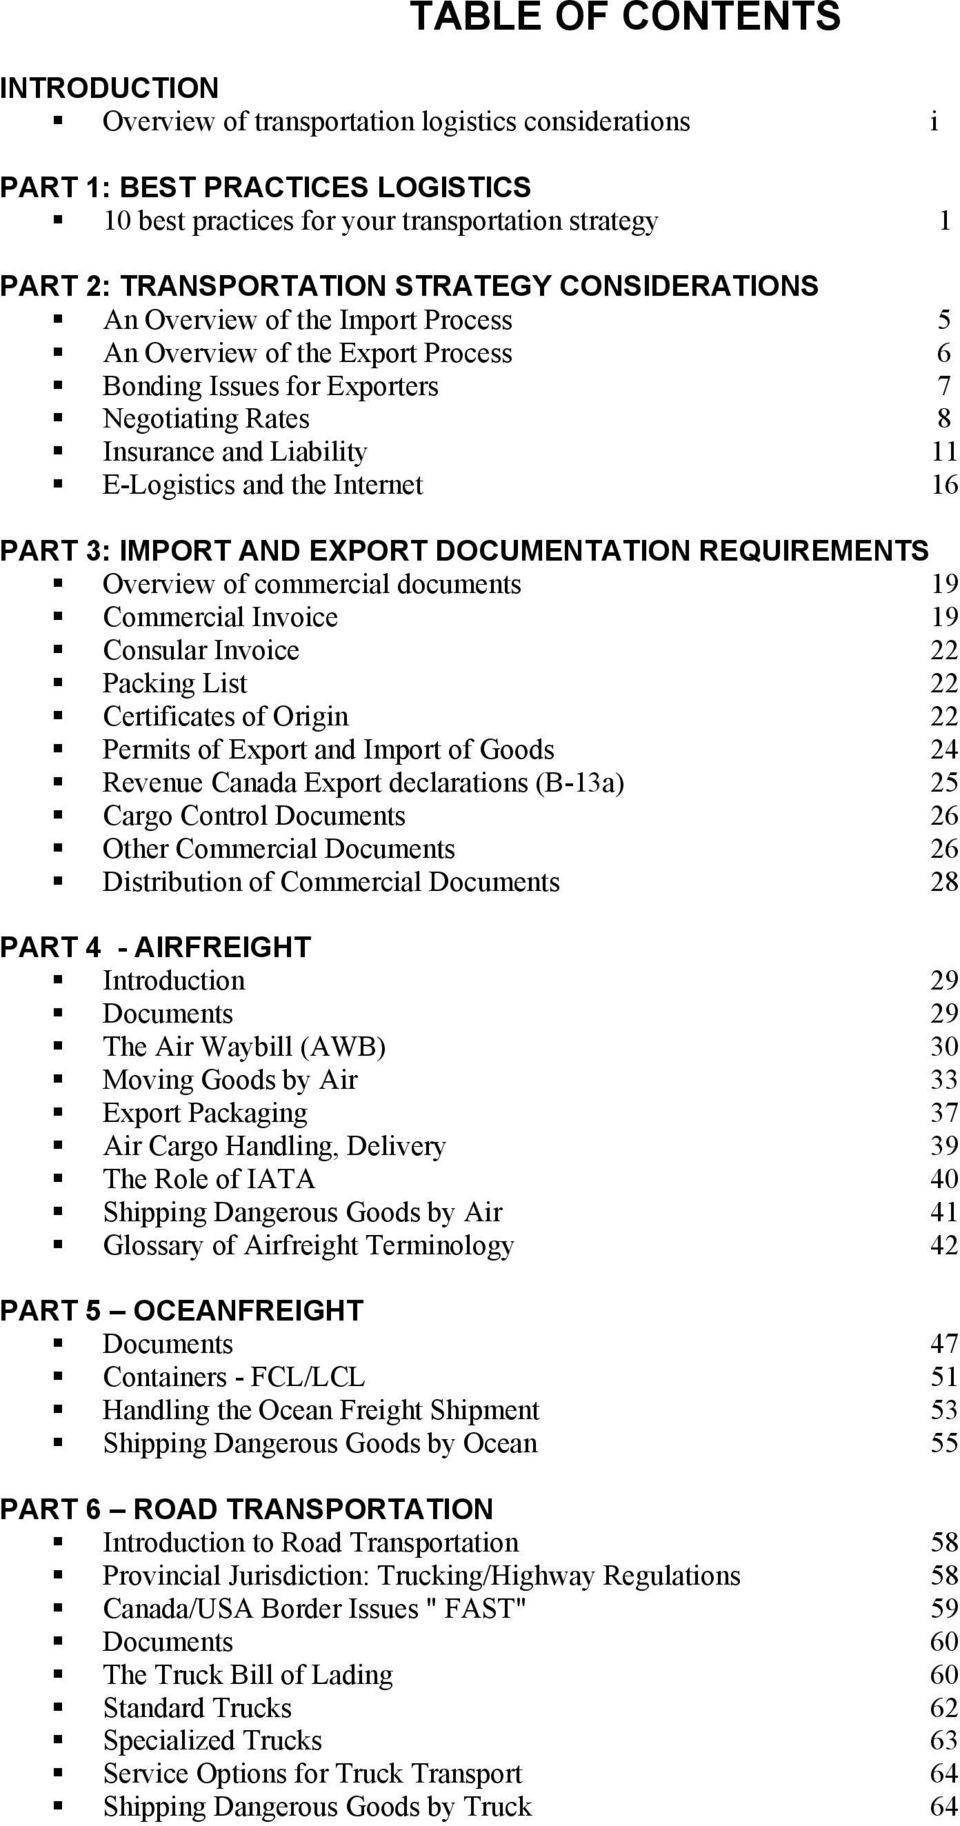 Internet 16 PART 3: IMPORT AND EXPORT DOCUMENTATION REQUIREMENTS Overview of commercial documents 19 Commercial Invoice 19 Consular Invoice 22 Packing List 22 Certificates of Origin 22 Permits of